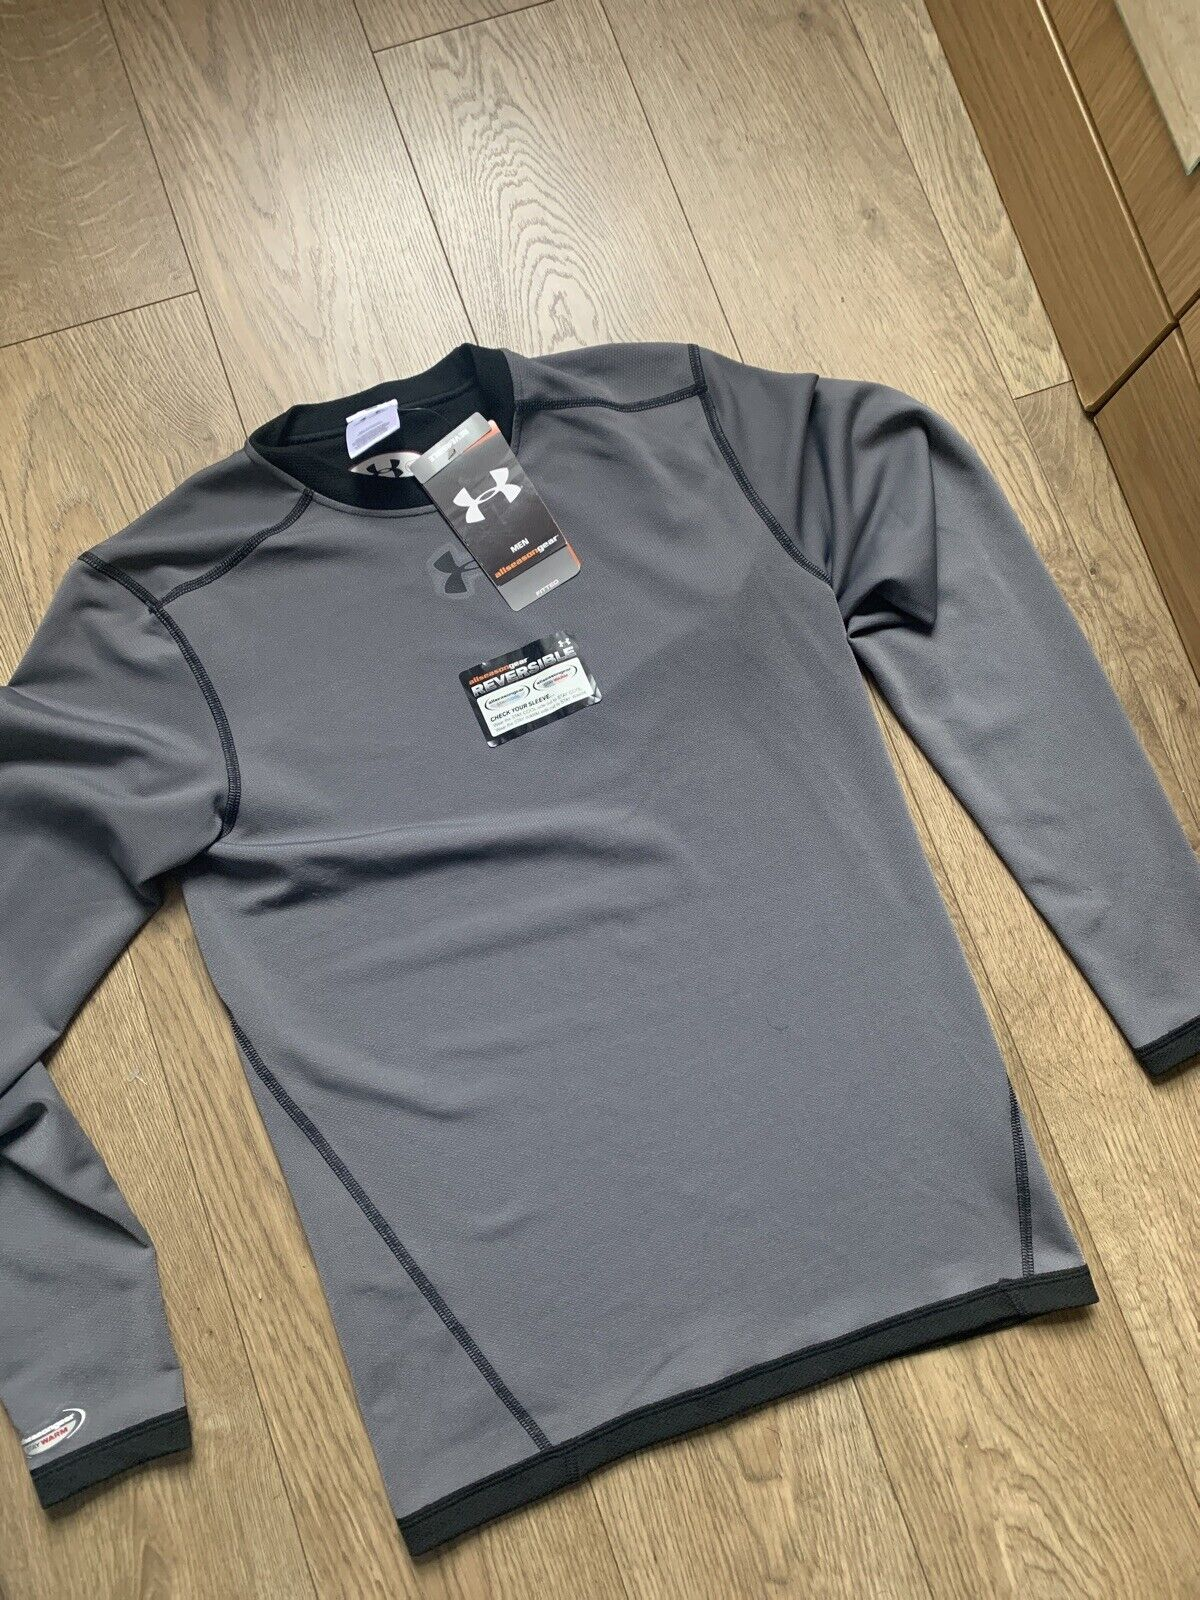 under armour All Season Gears Shirt Size Small Mens Brand New